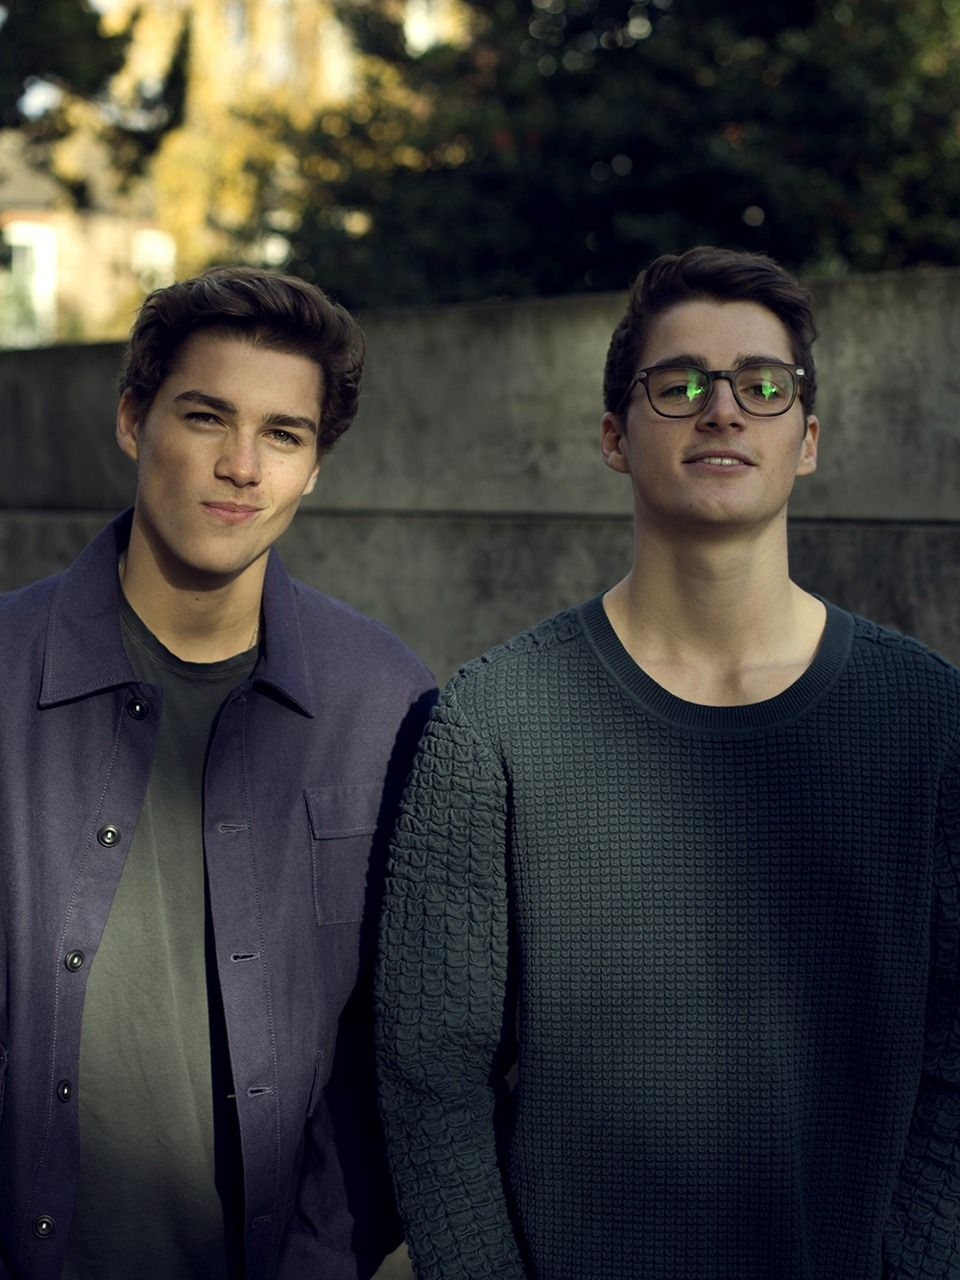 Jack Harries Imagines Tumblr | www.imgkid.com - The Image ...